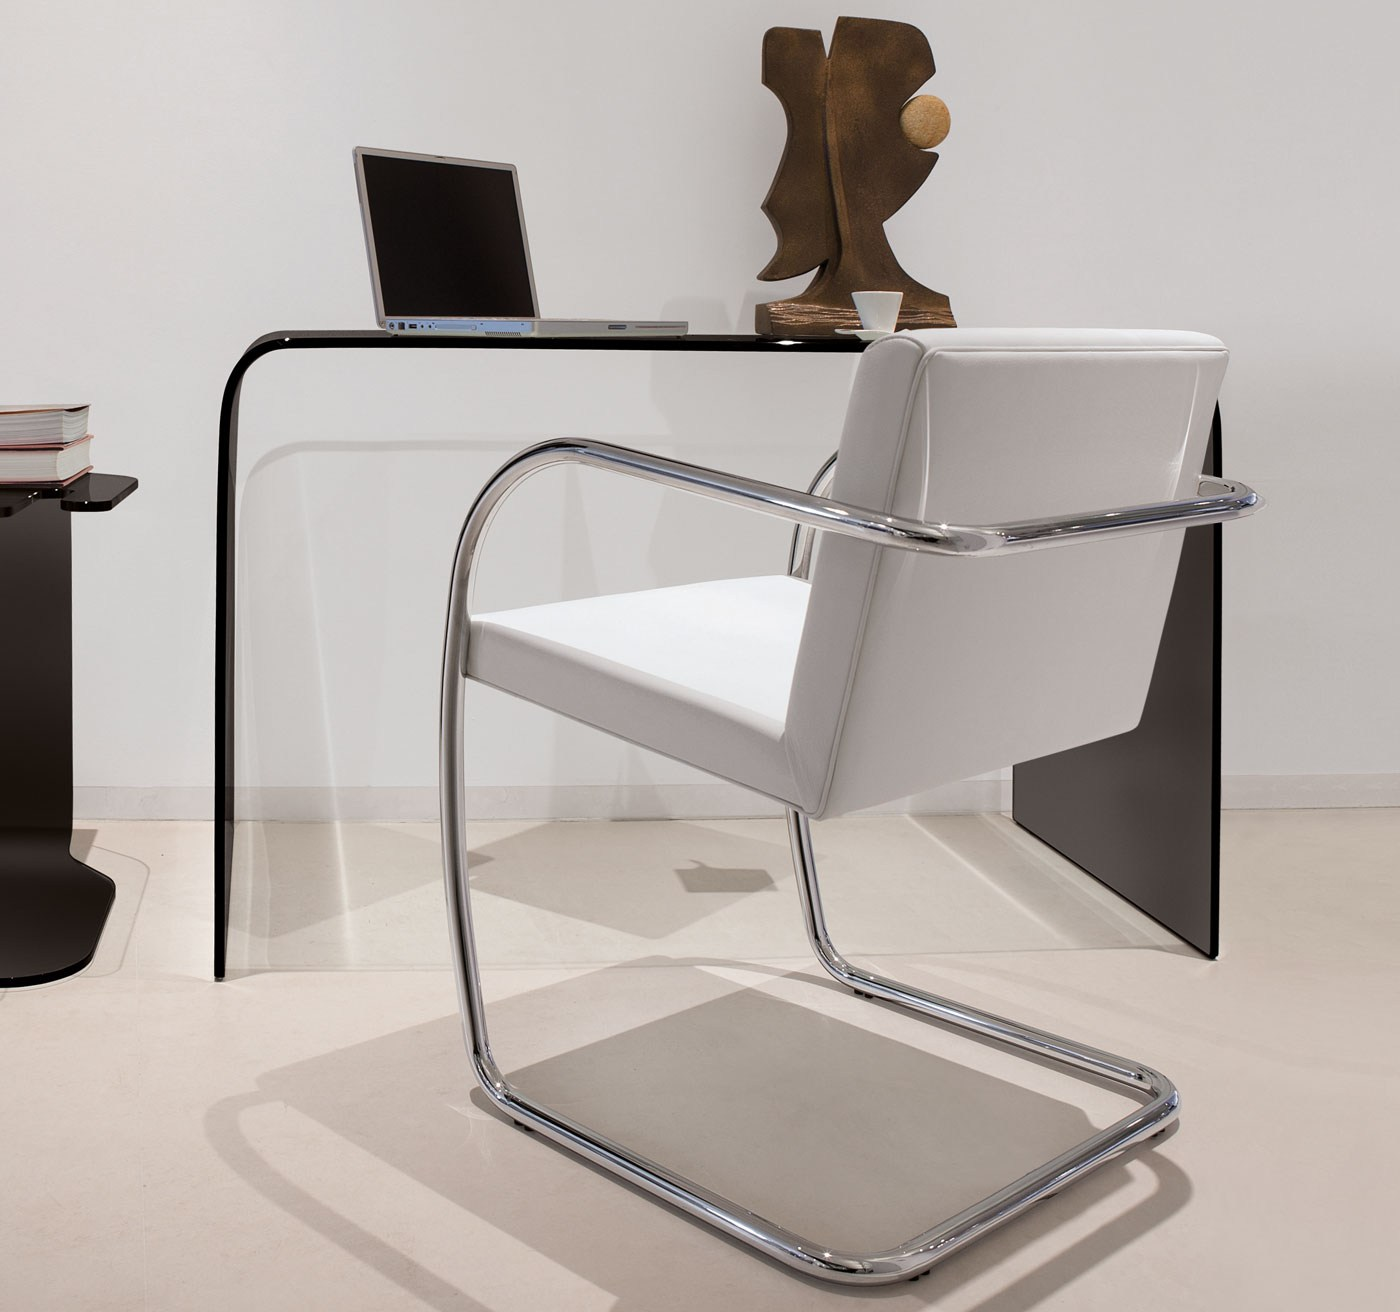 Design glass writing desk ACCADEMIA by ITALY DREAM DESIGN